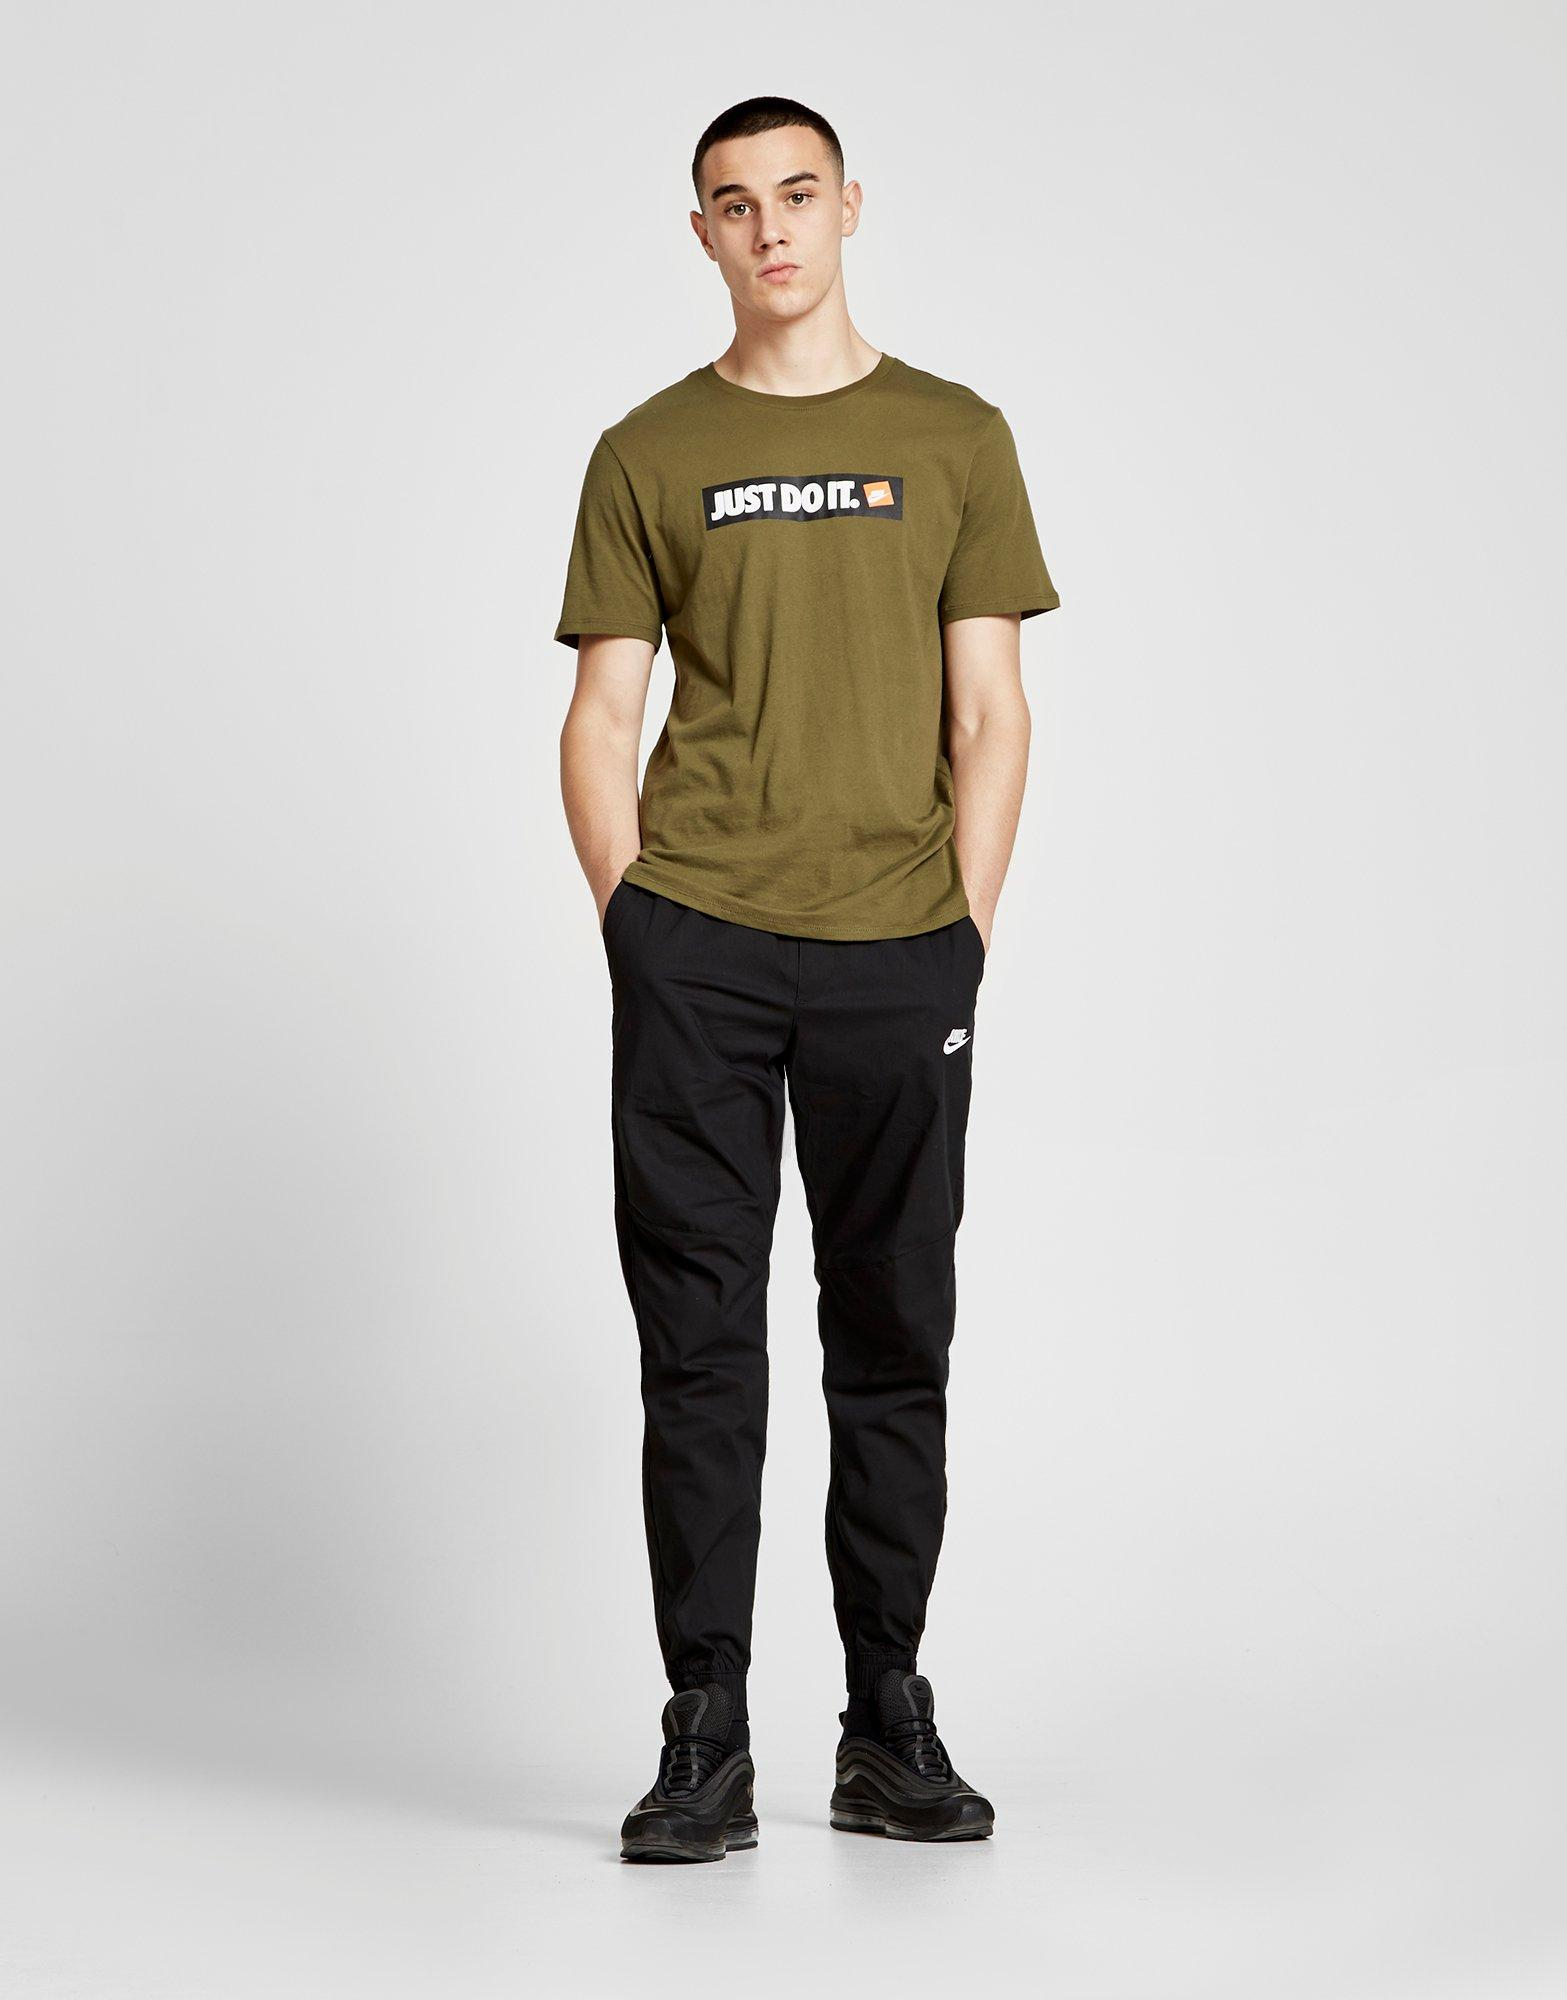 Lyst - Nike Twill Cuffed Track Pants in Black for Men 836d550a60ee